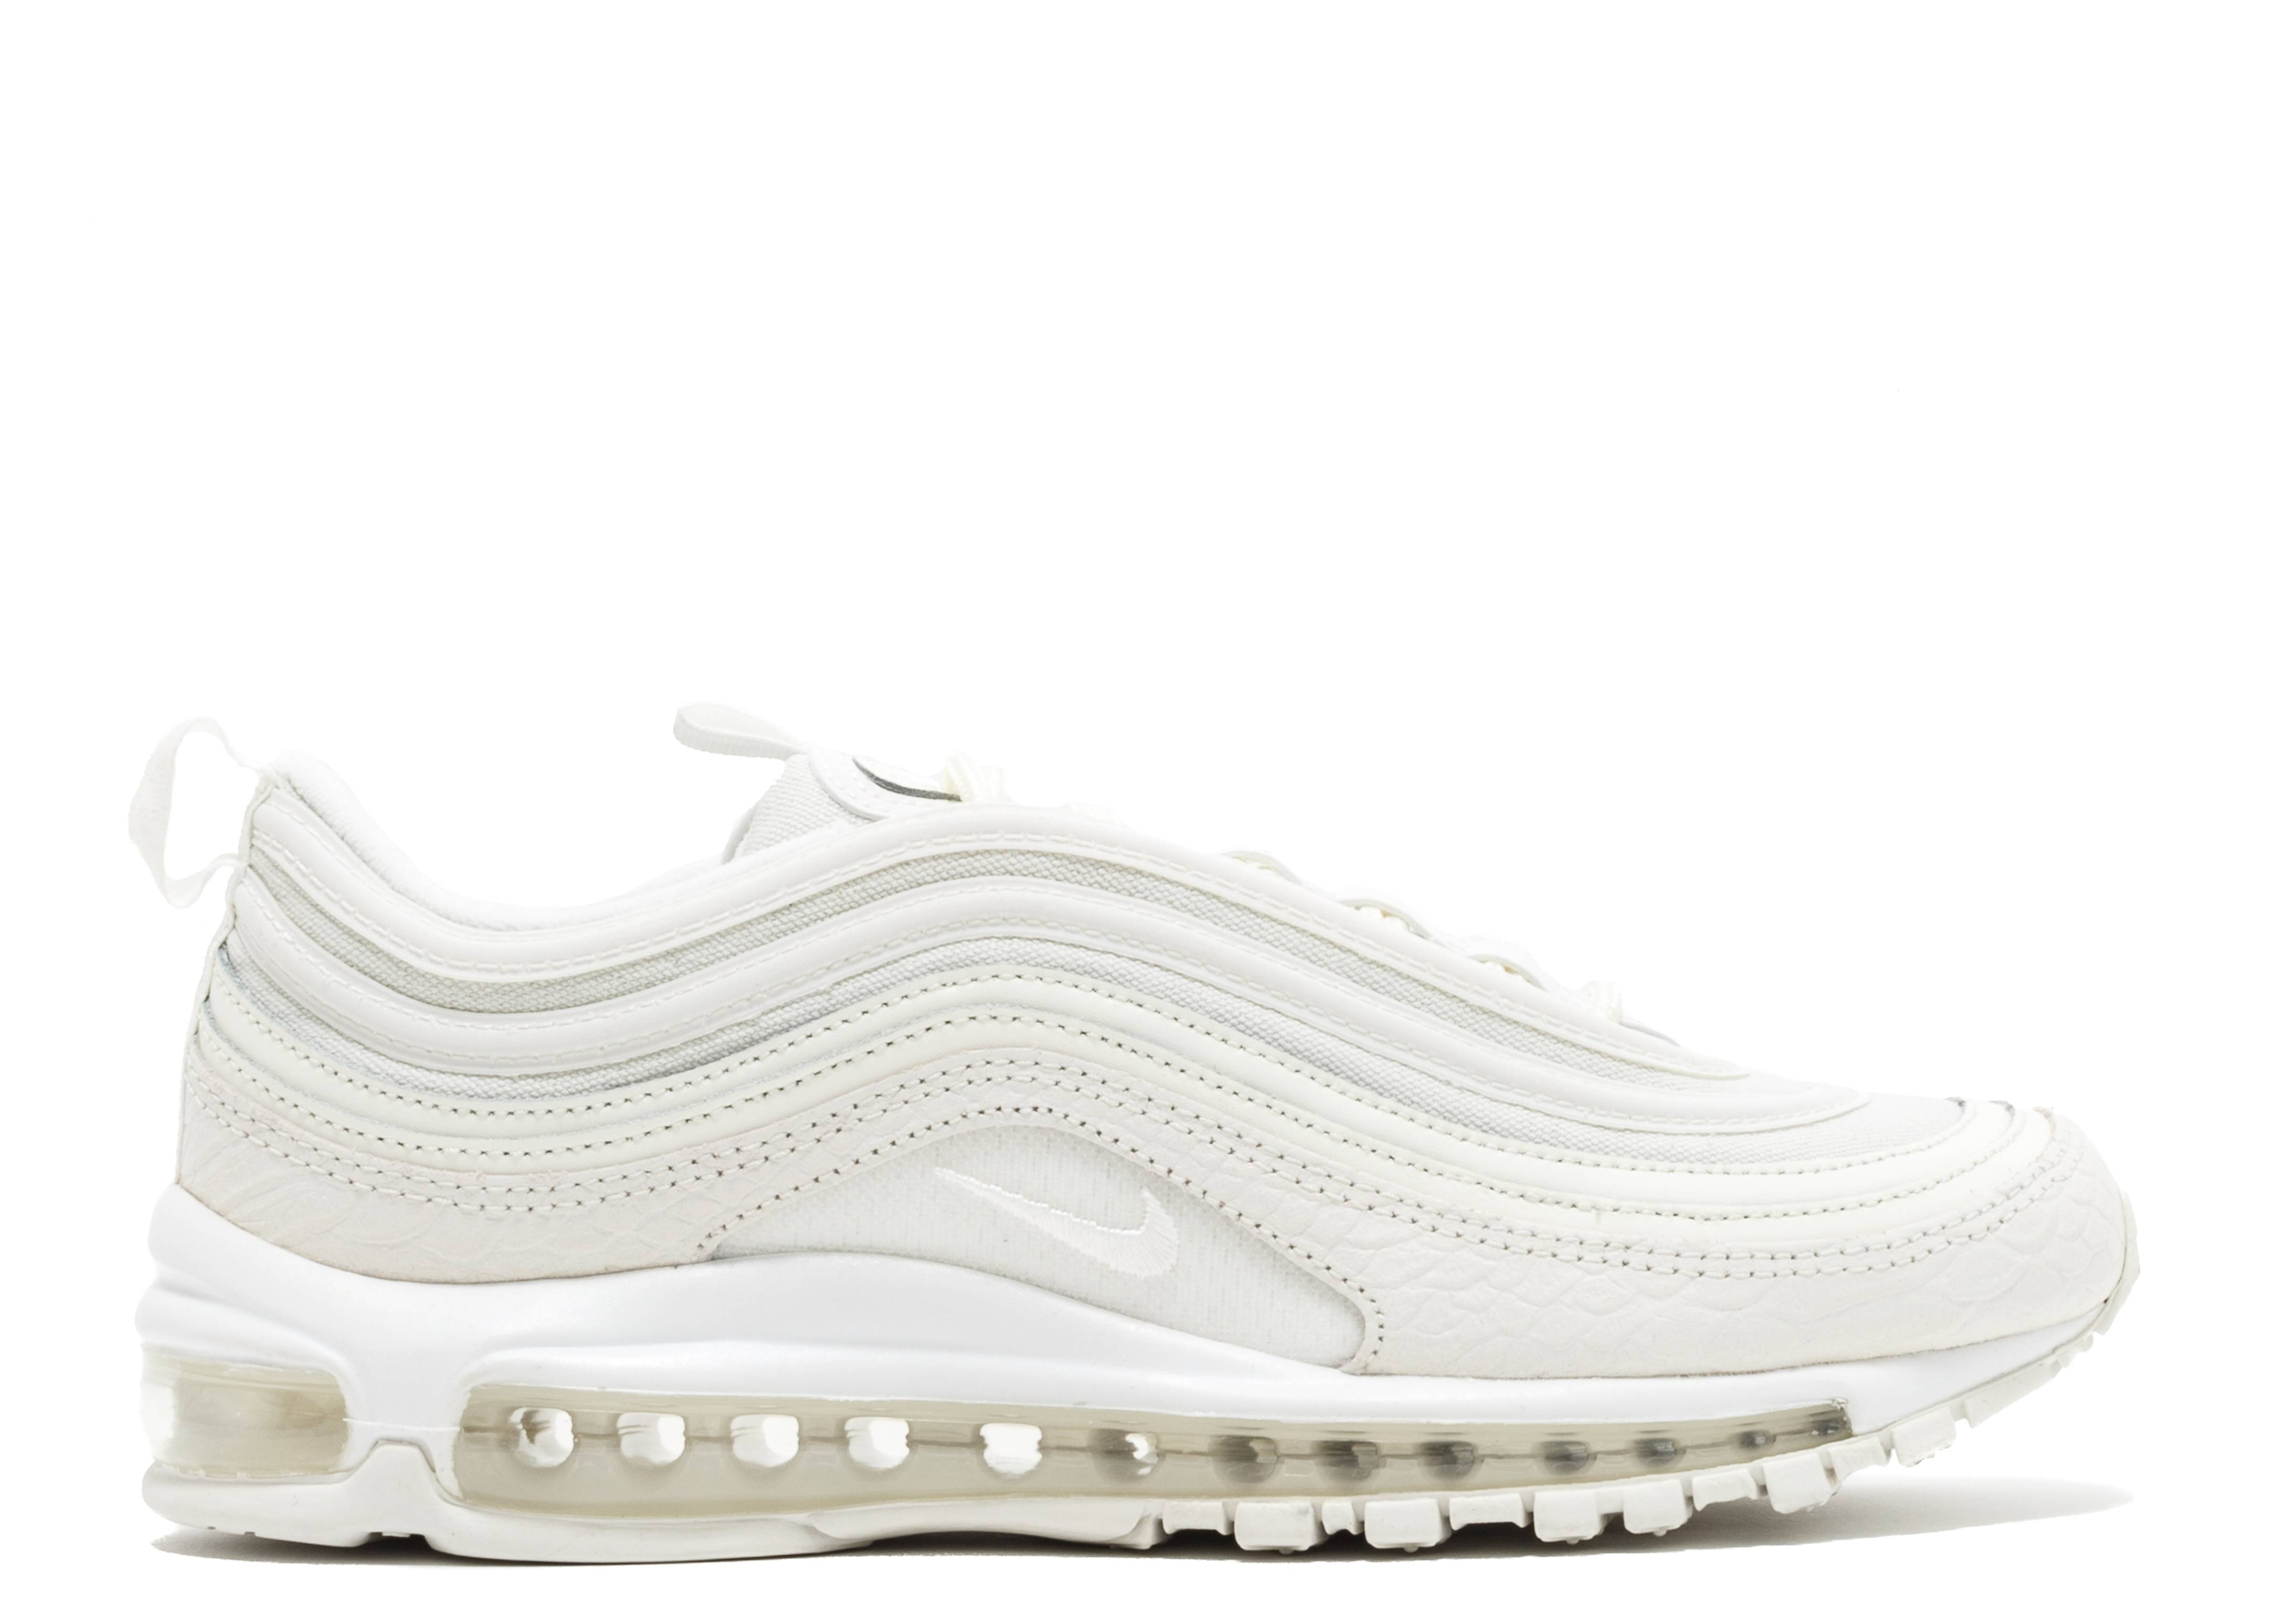 7c050ab302 nike air max 97 navy online > OFF47% Discounts